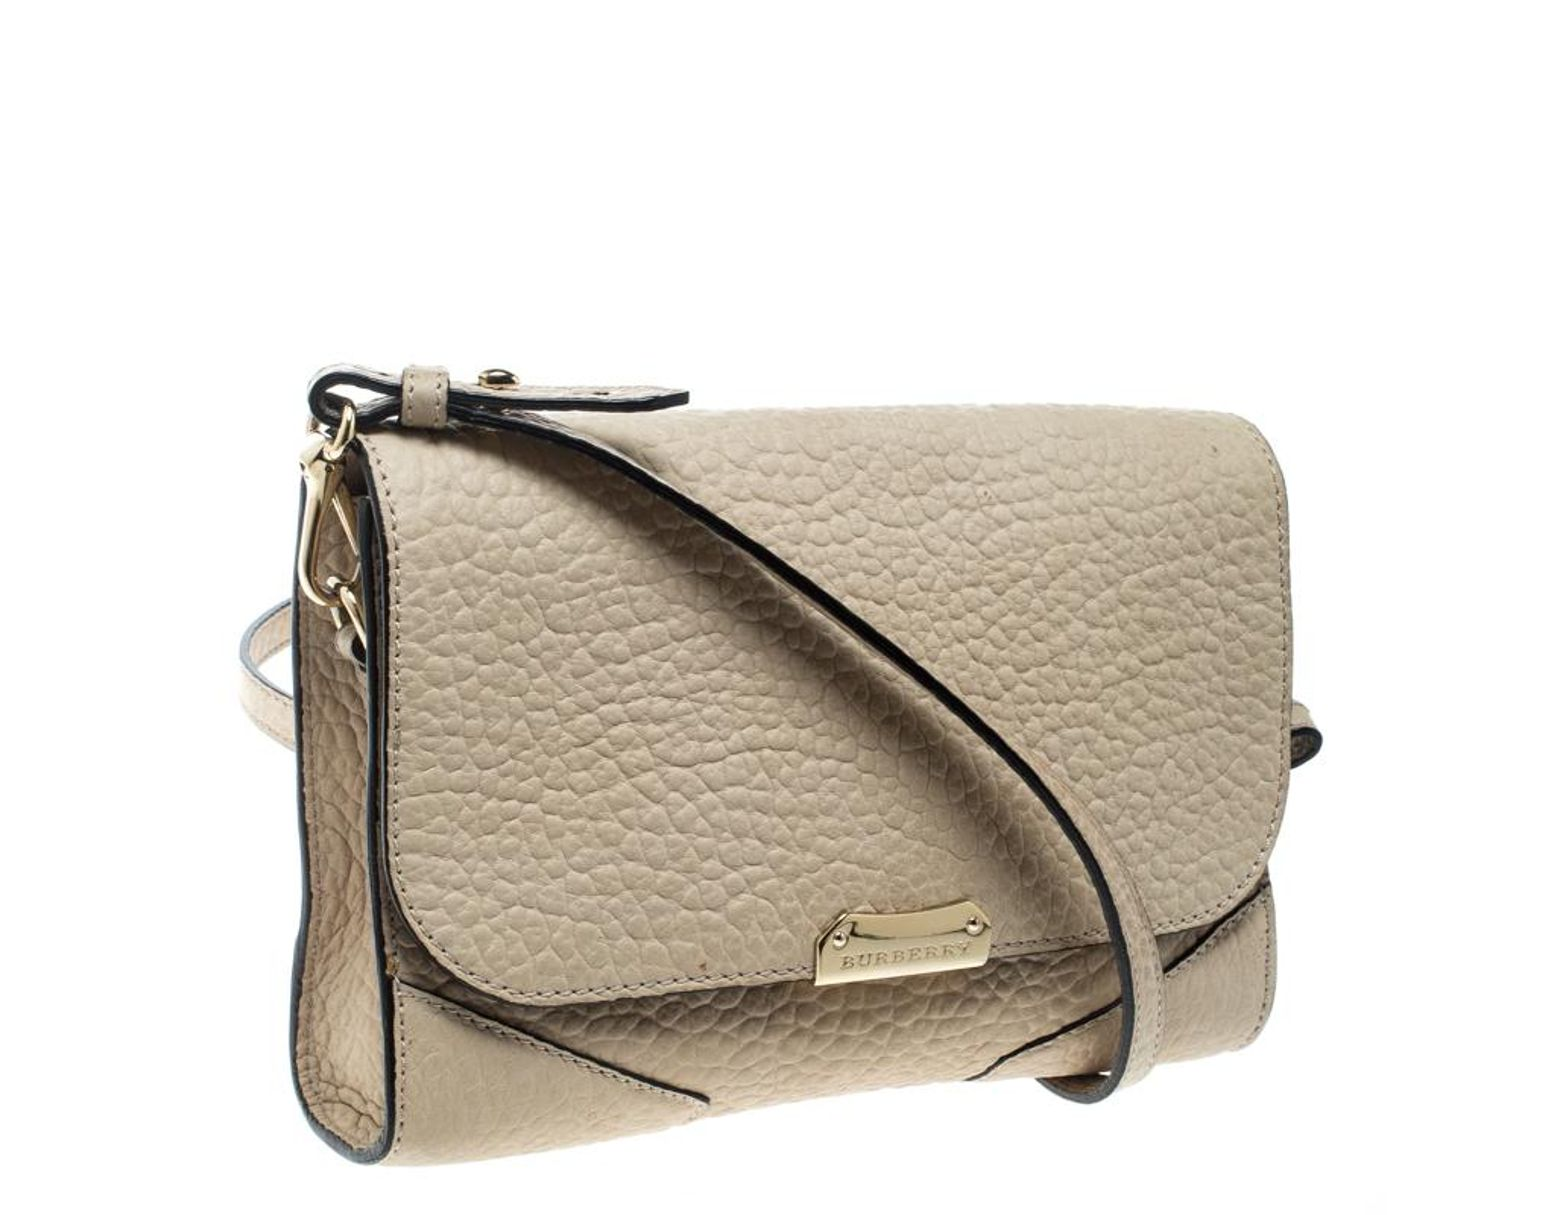 4d45753271e3 Lyst - Burberry Beige Nubuck Leather Small Langley Crossbody Bag in Natural